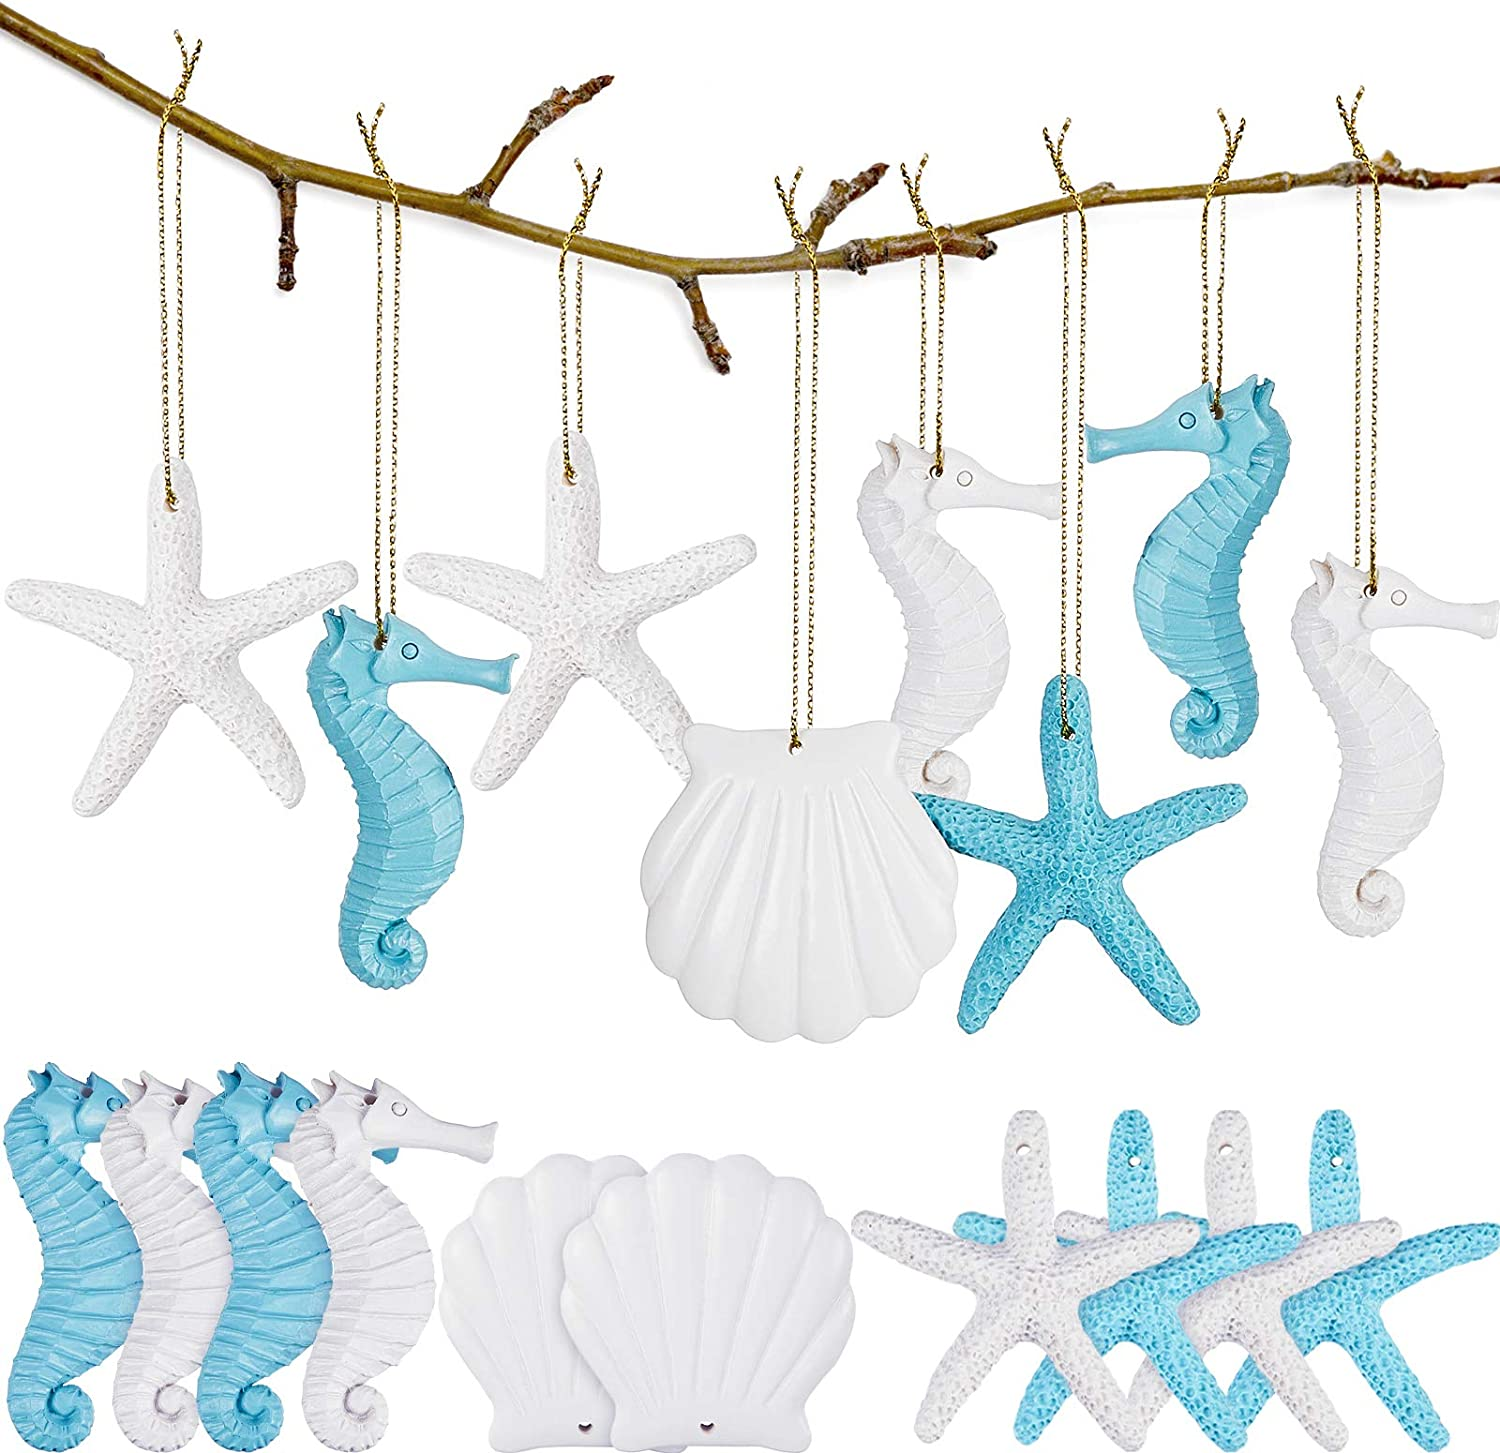 30 Pieces Resin Starfish Assorted Resin Pencil Finger Starfish Seahorse Seashells Ocean Themed Hanging Ornaments with Drilled Hole Rope for Christmas Wedding Party Decor DIY Craft Supplies